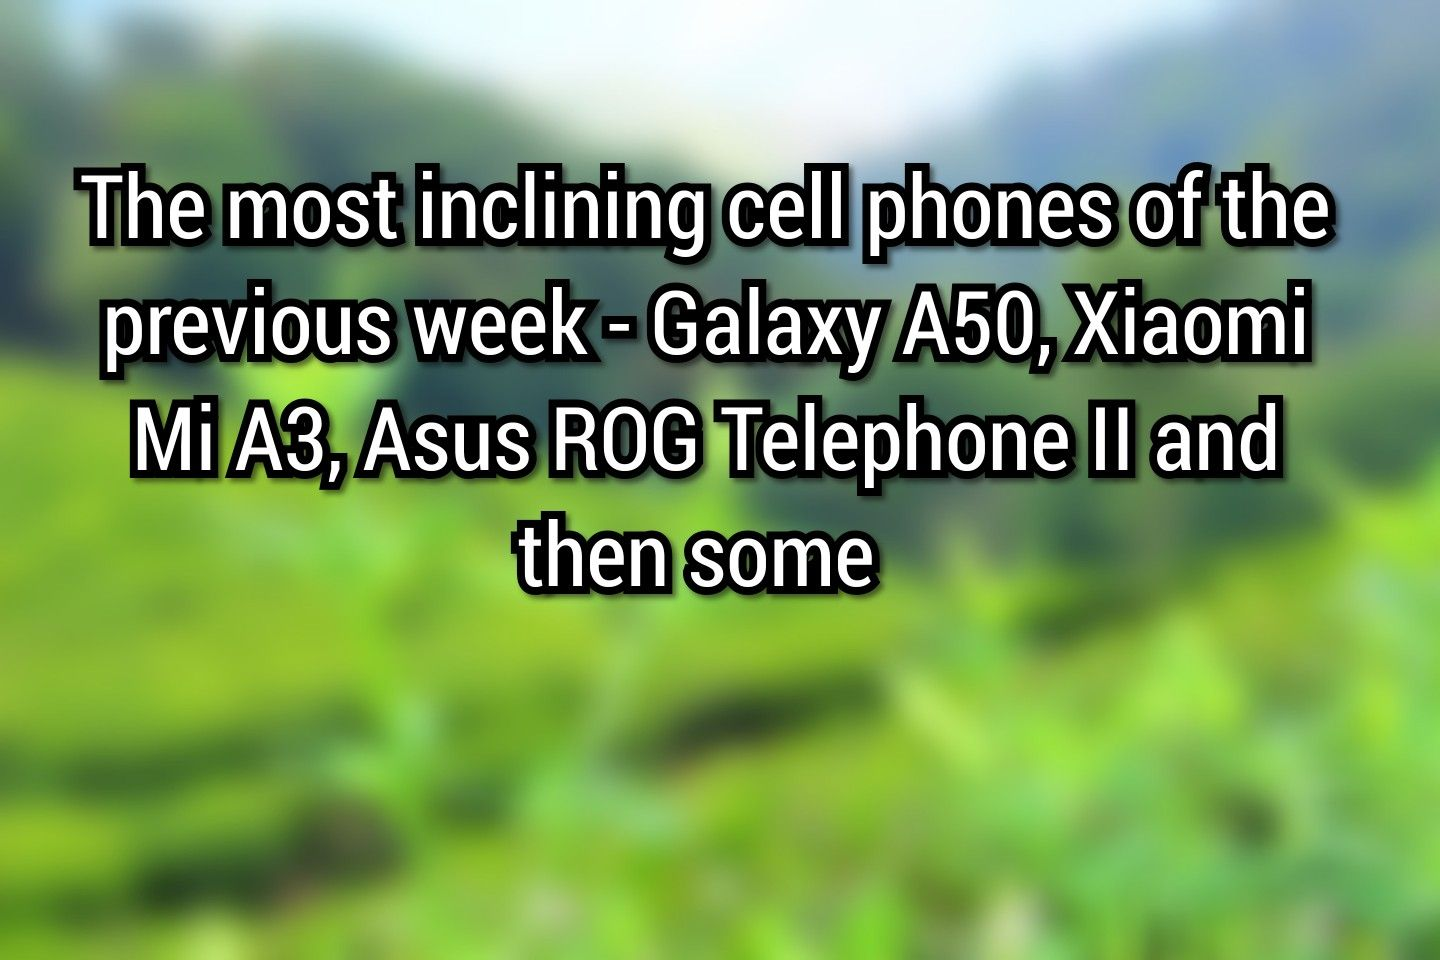 The most trending cell phones of the previous week